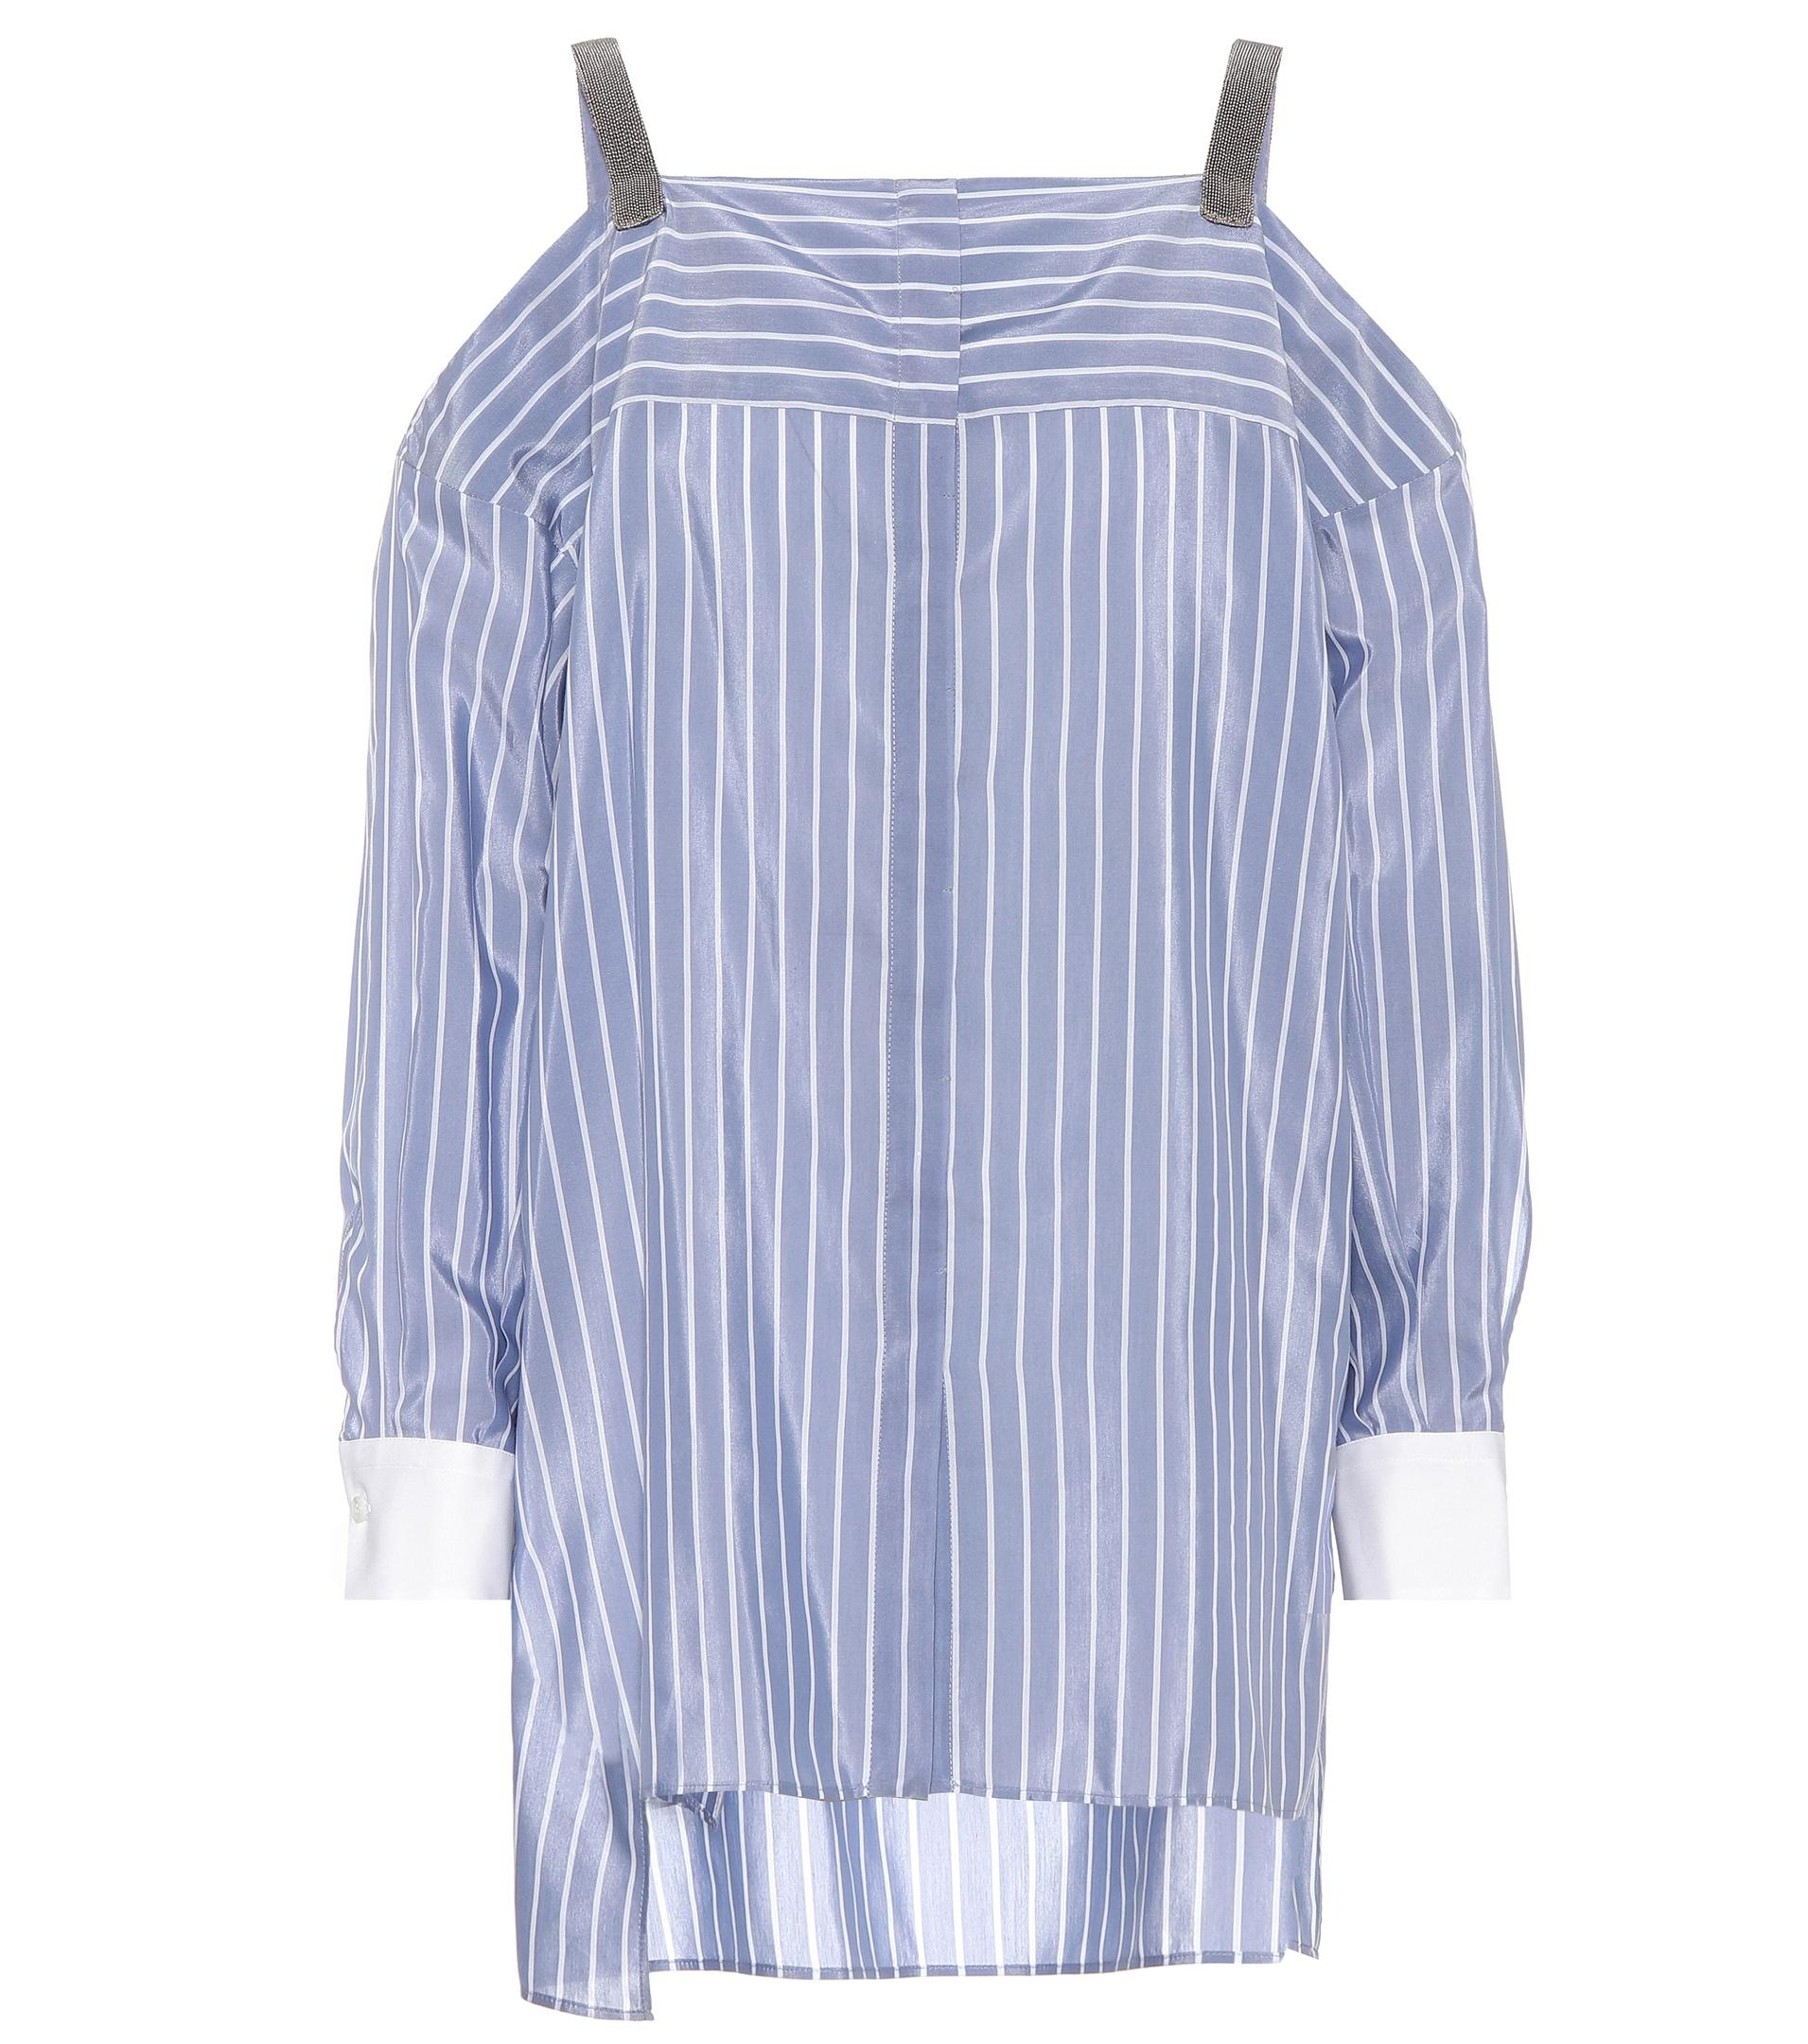 Cotton and silk off-the-shoulder top Brunello Cucinelli Footlocker Cheap Price Explore Cheap Online Cheap New Visit APuFMYJNb